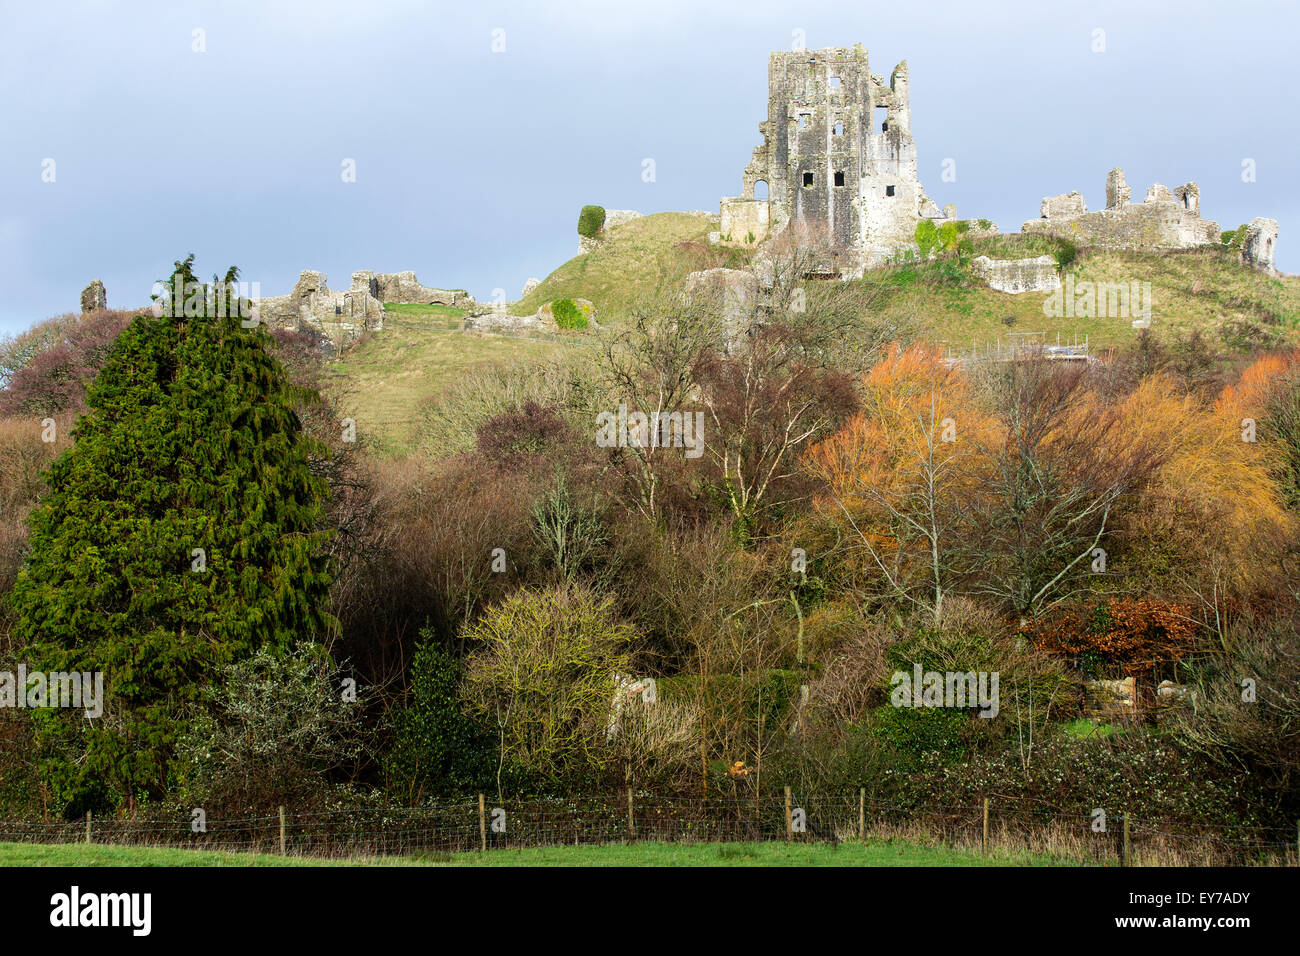 A view across to the historic remains of the 11th century Corfe Castle, built by William the Conqueror in Dorset, - Stock Image